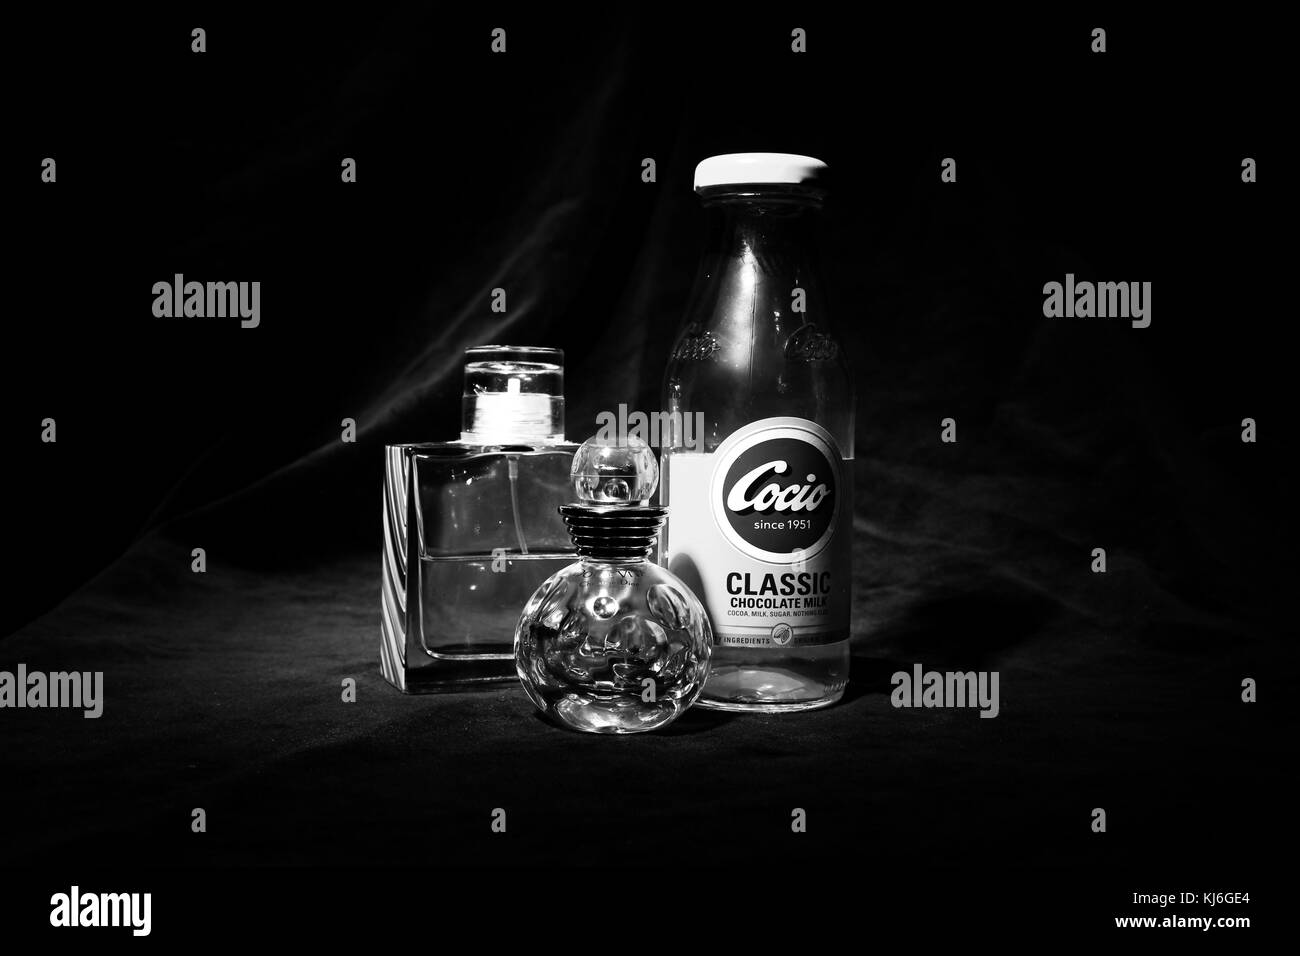 Glass Bottles and Perfume - Stock Image